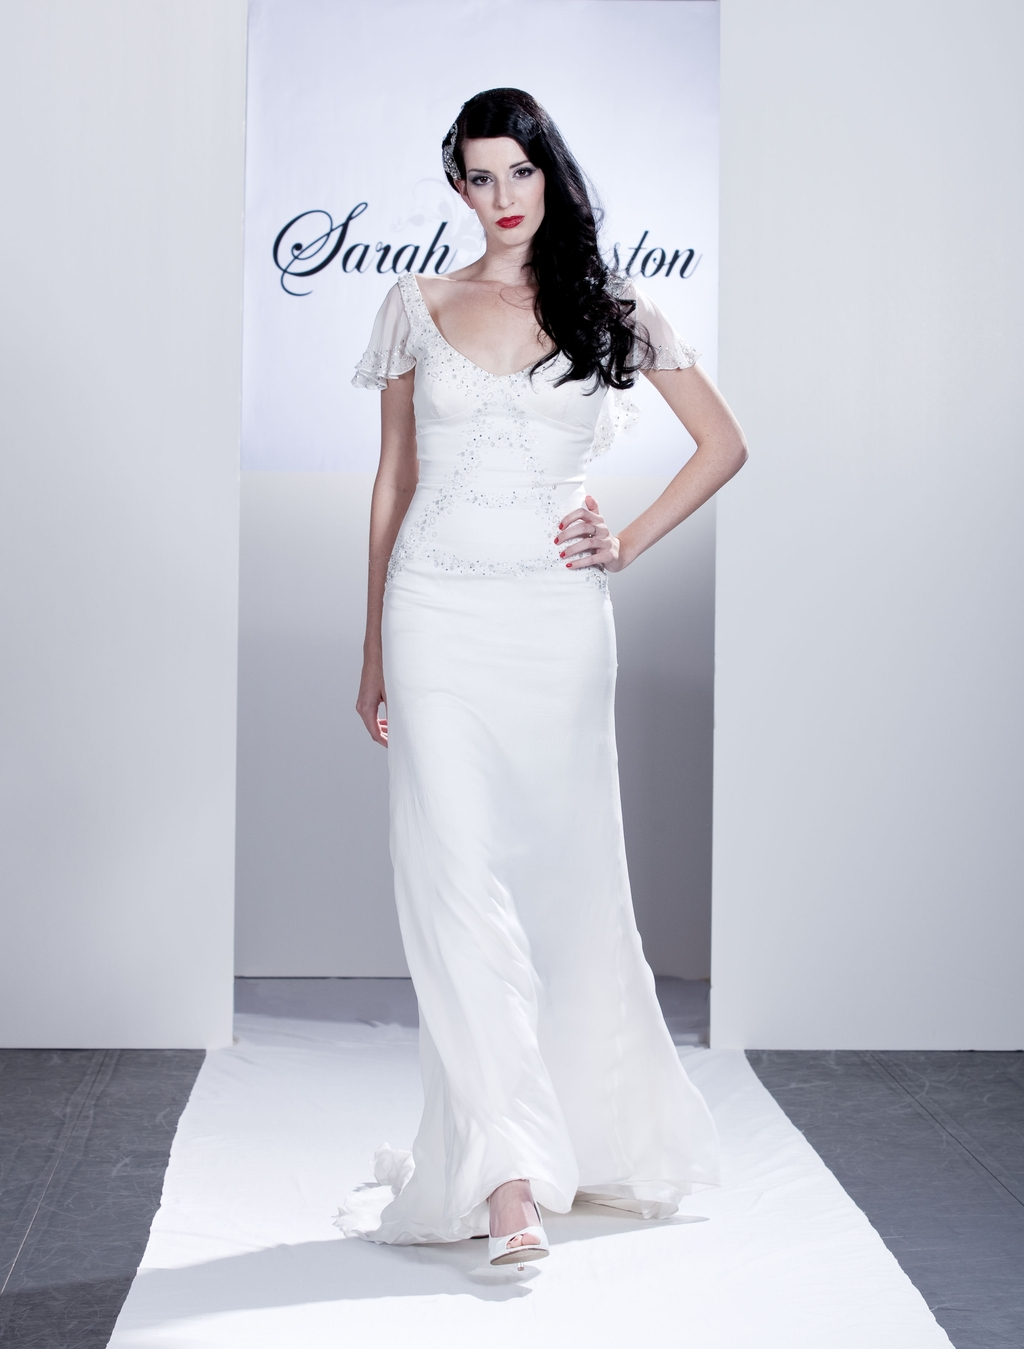 Grace-scoop-neck-fitted-wedding-dress-off-the-shoulder-sheer-sleeves-embroidery.full